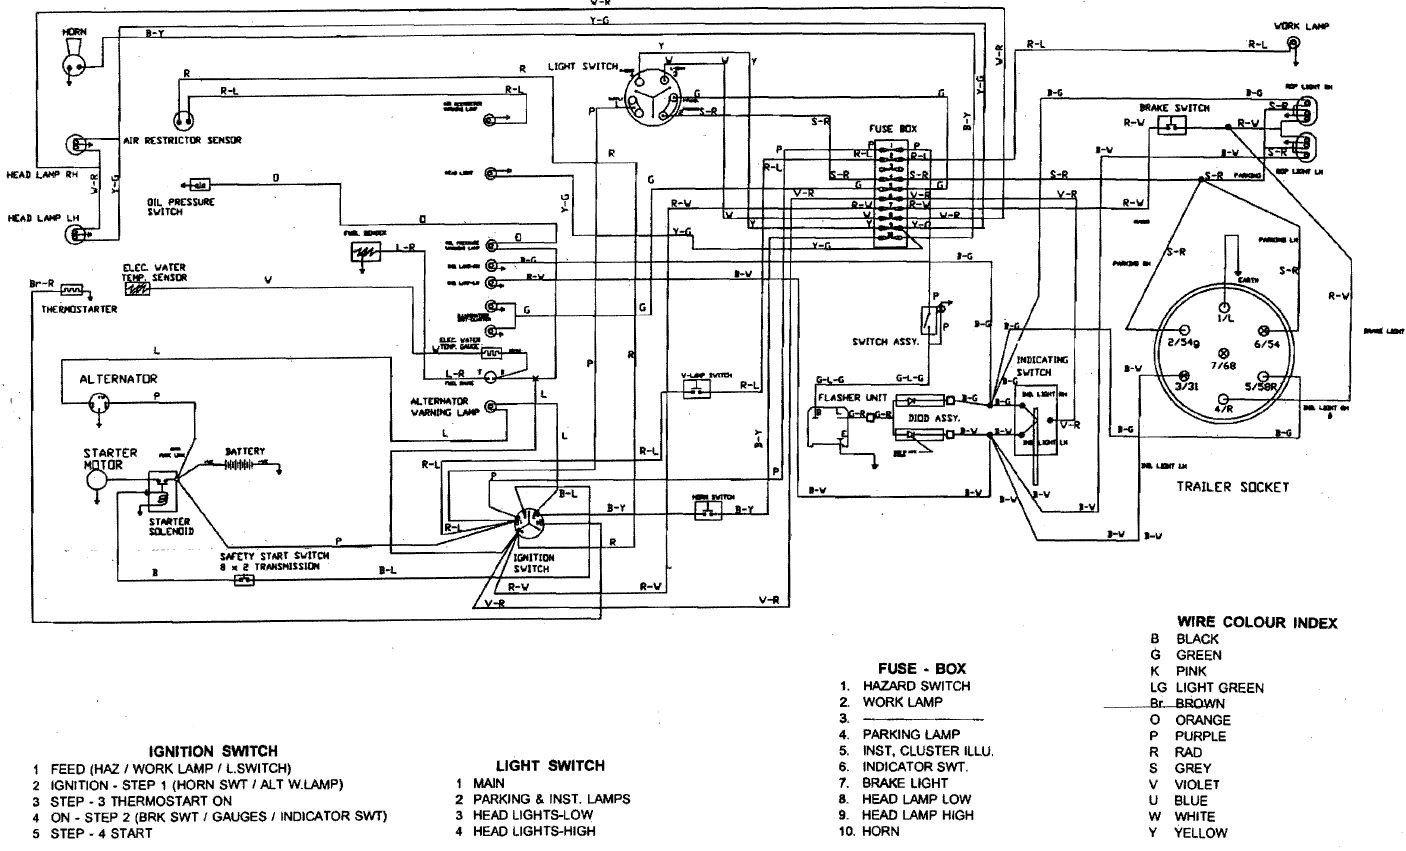 hight resolution of kubota ignition switch wiring diagram collection engine wiring tractor diesel ignition switch wiring diagram engine